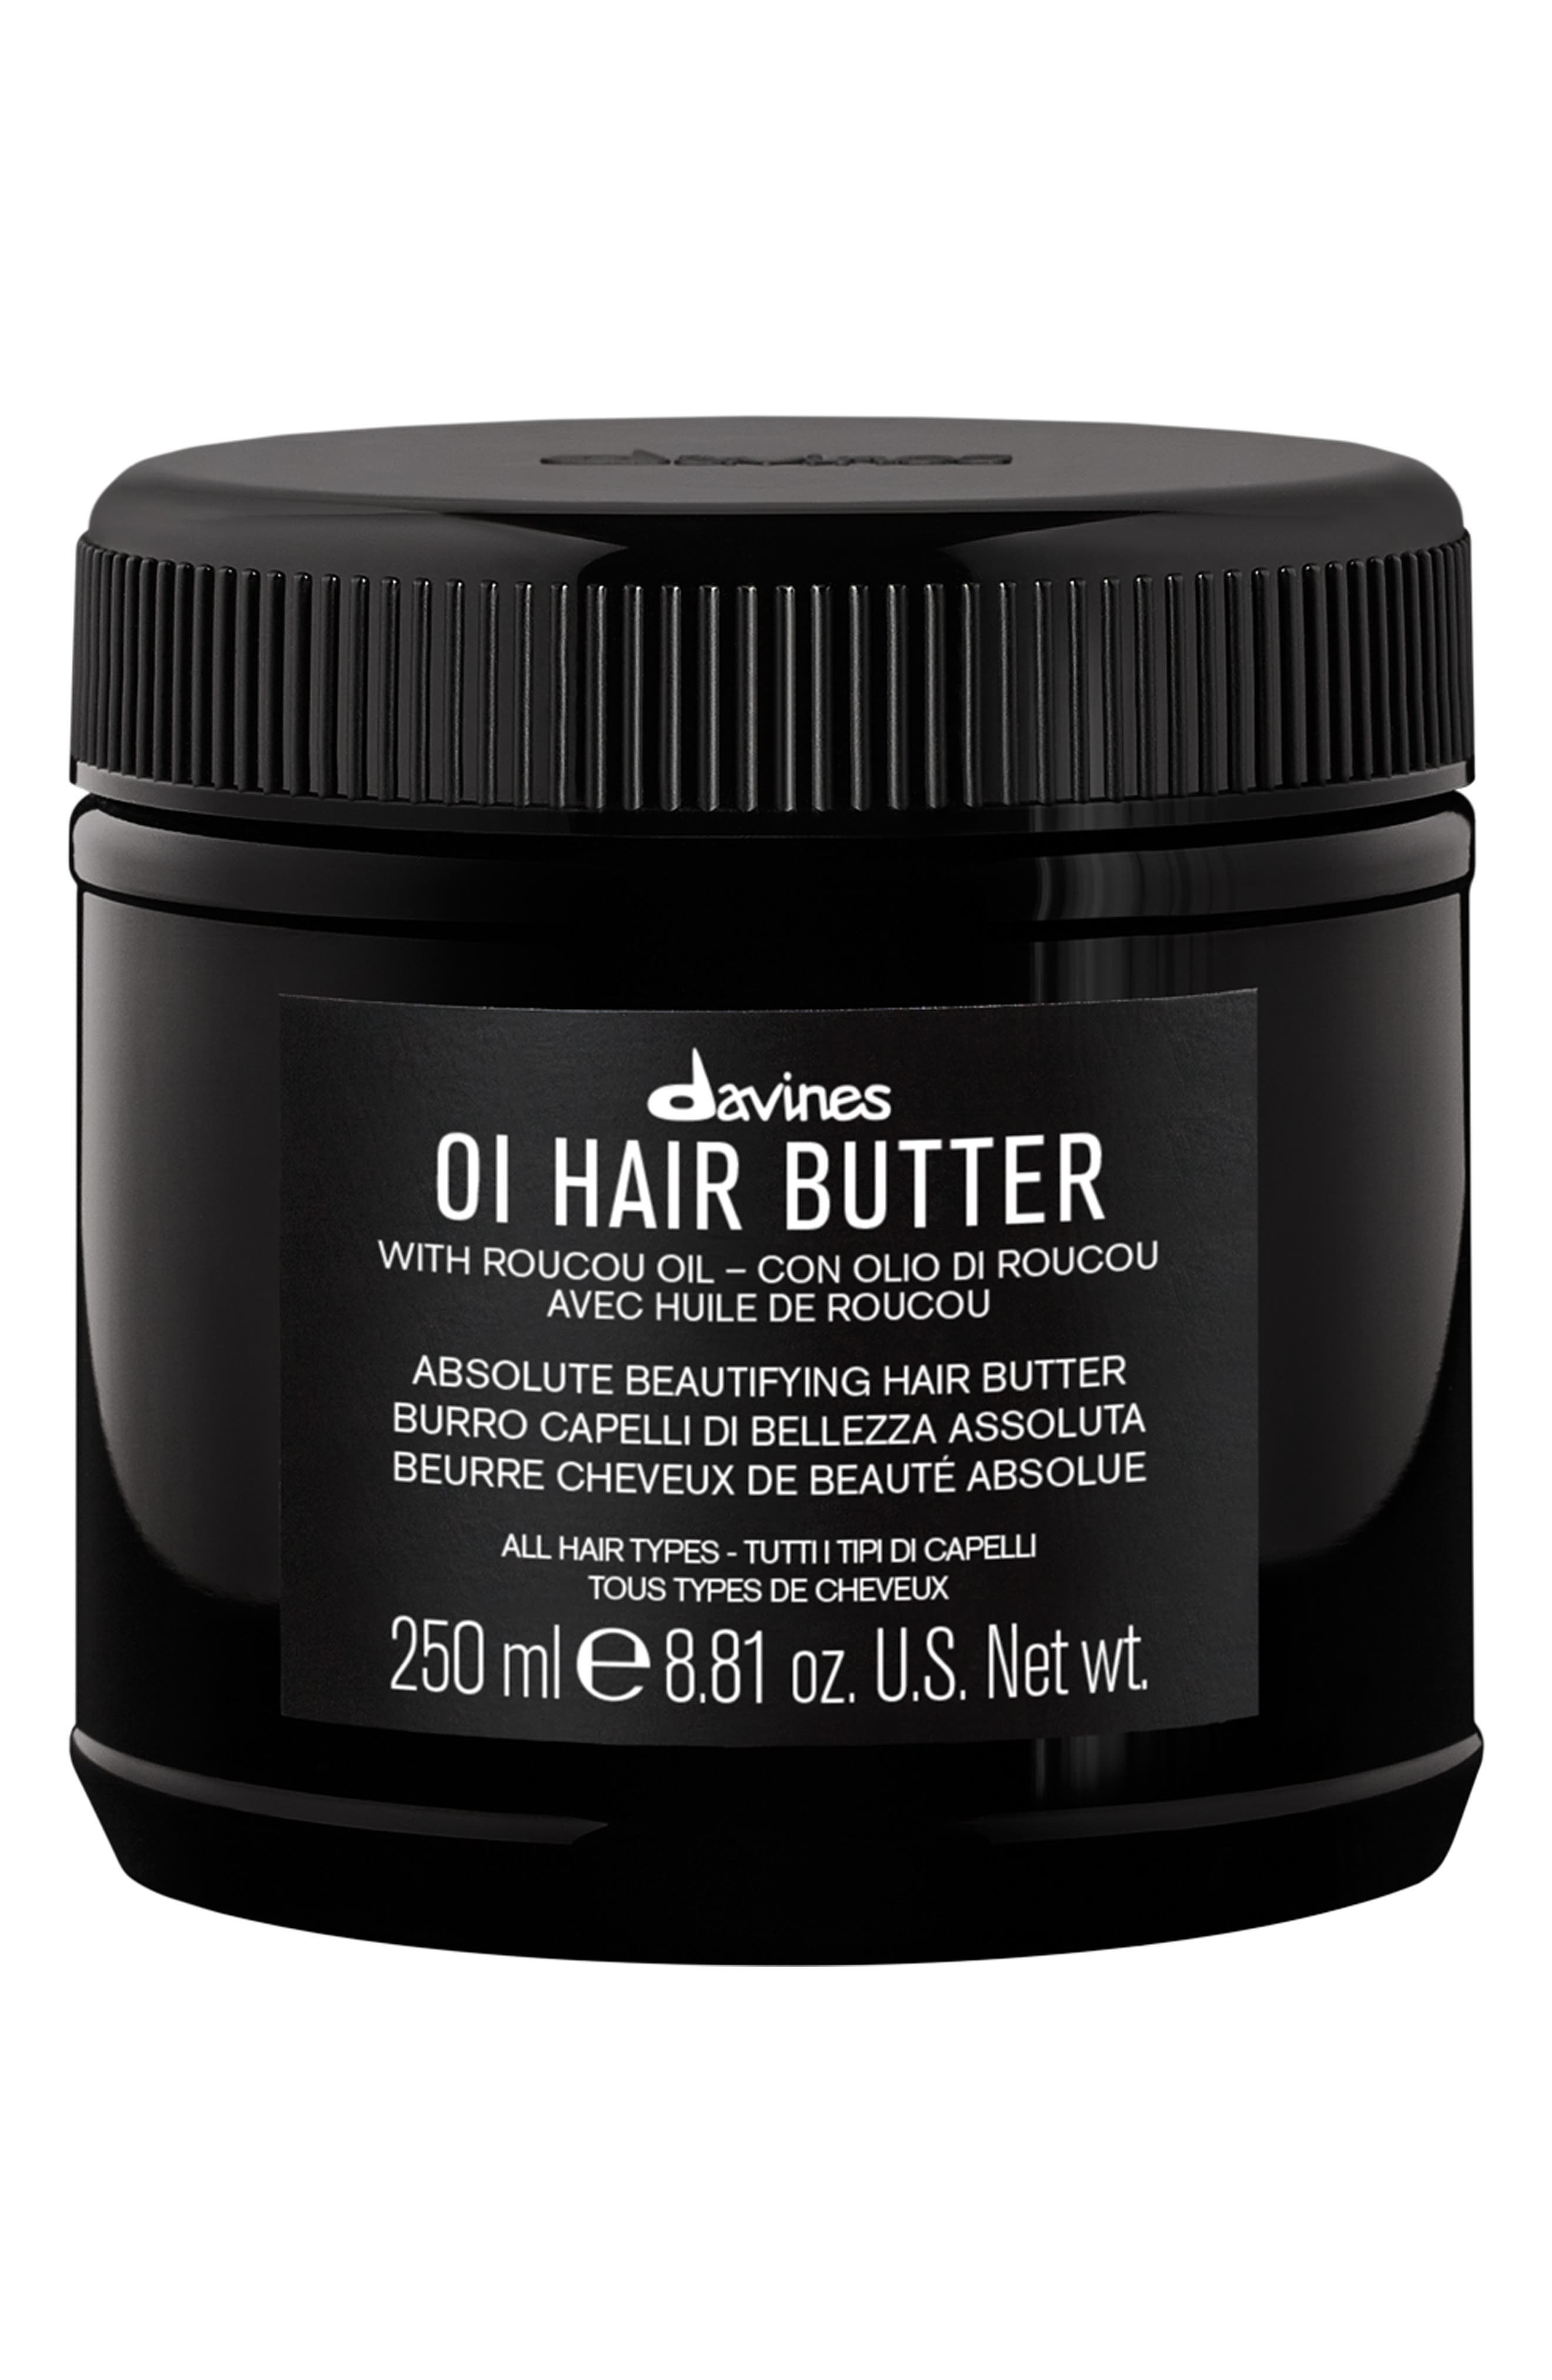 OI Hair Butter at Nordstrom